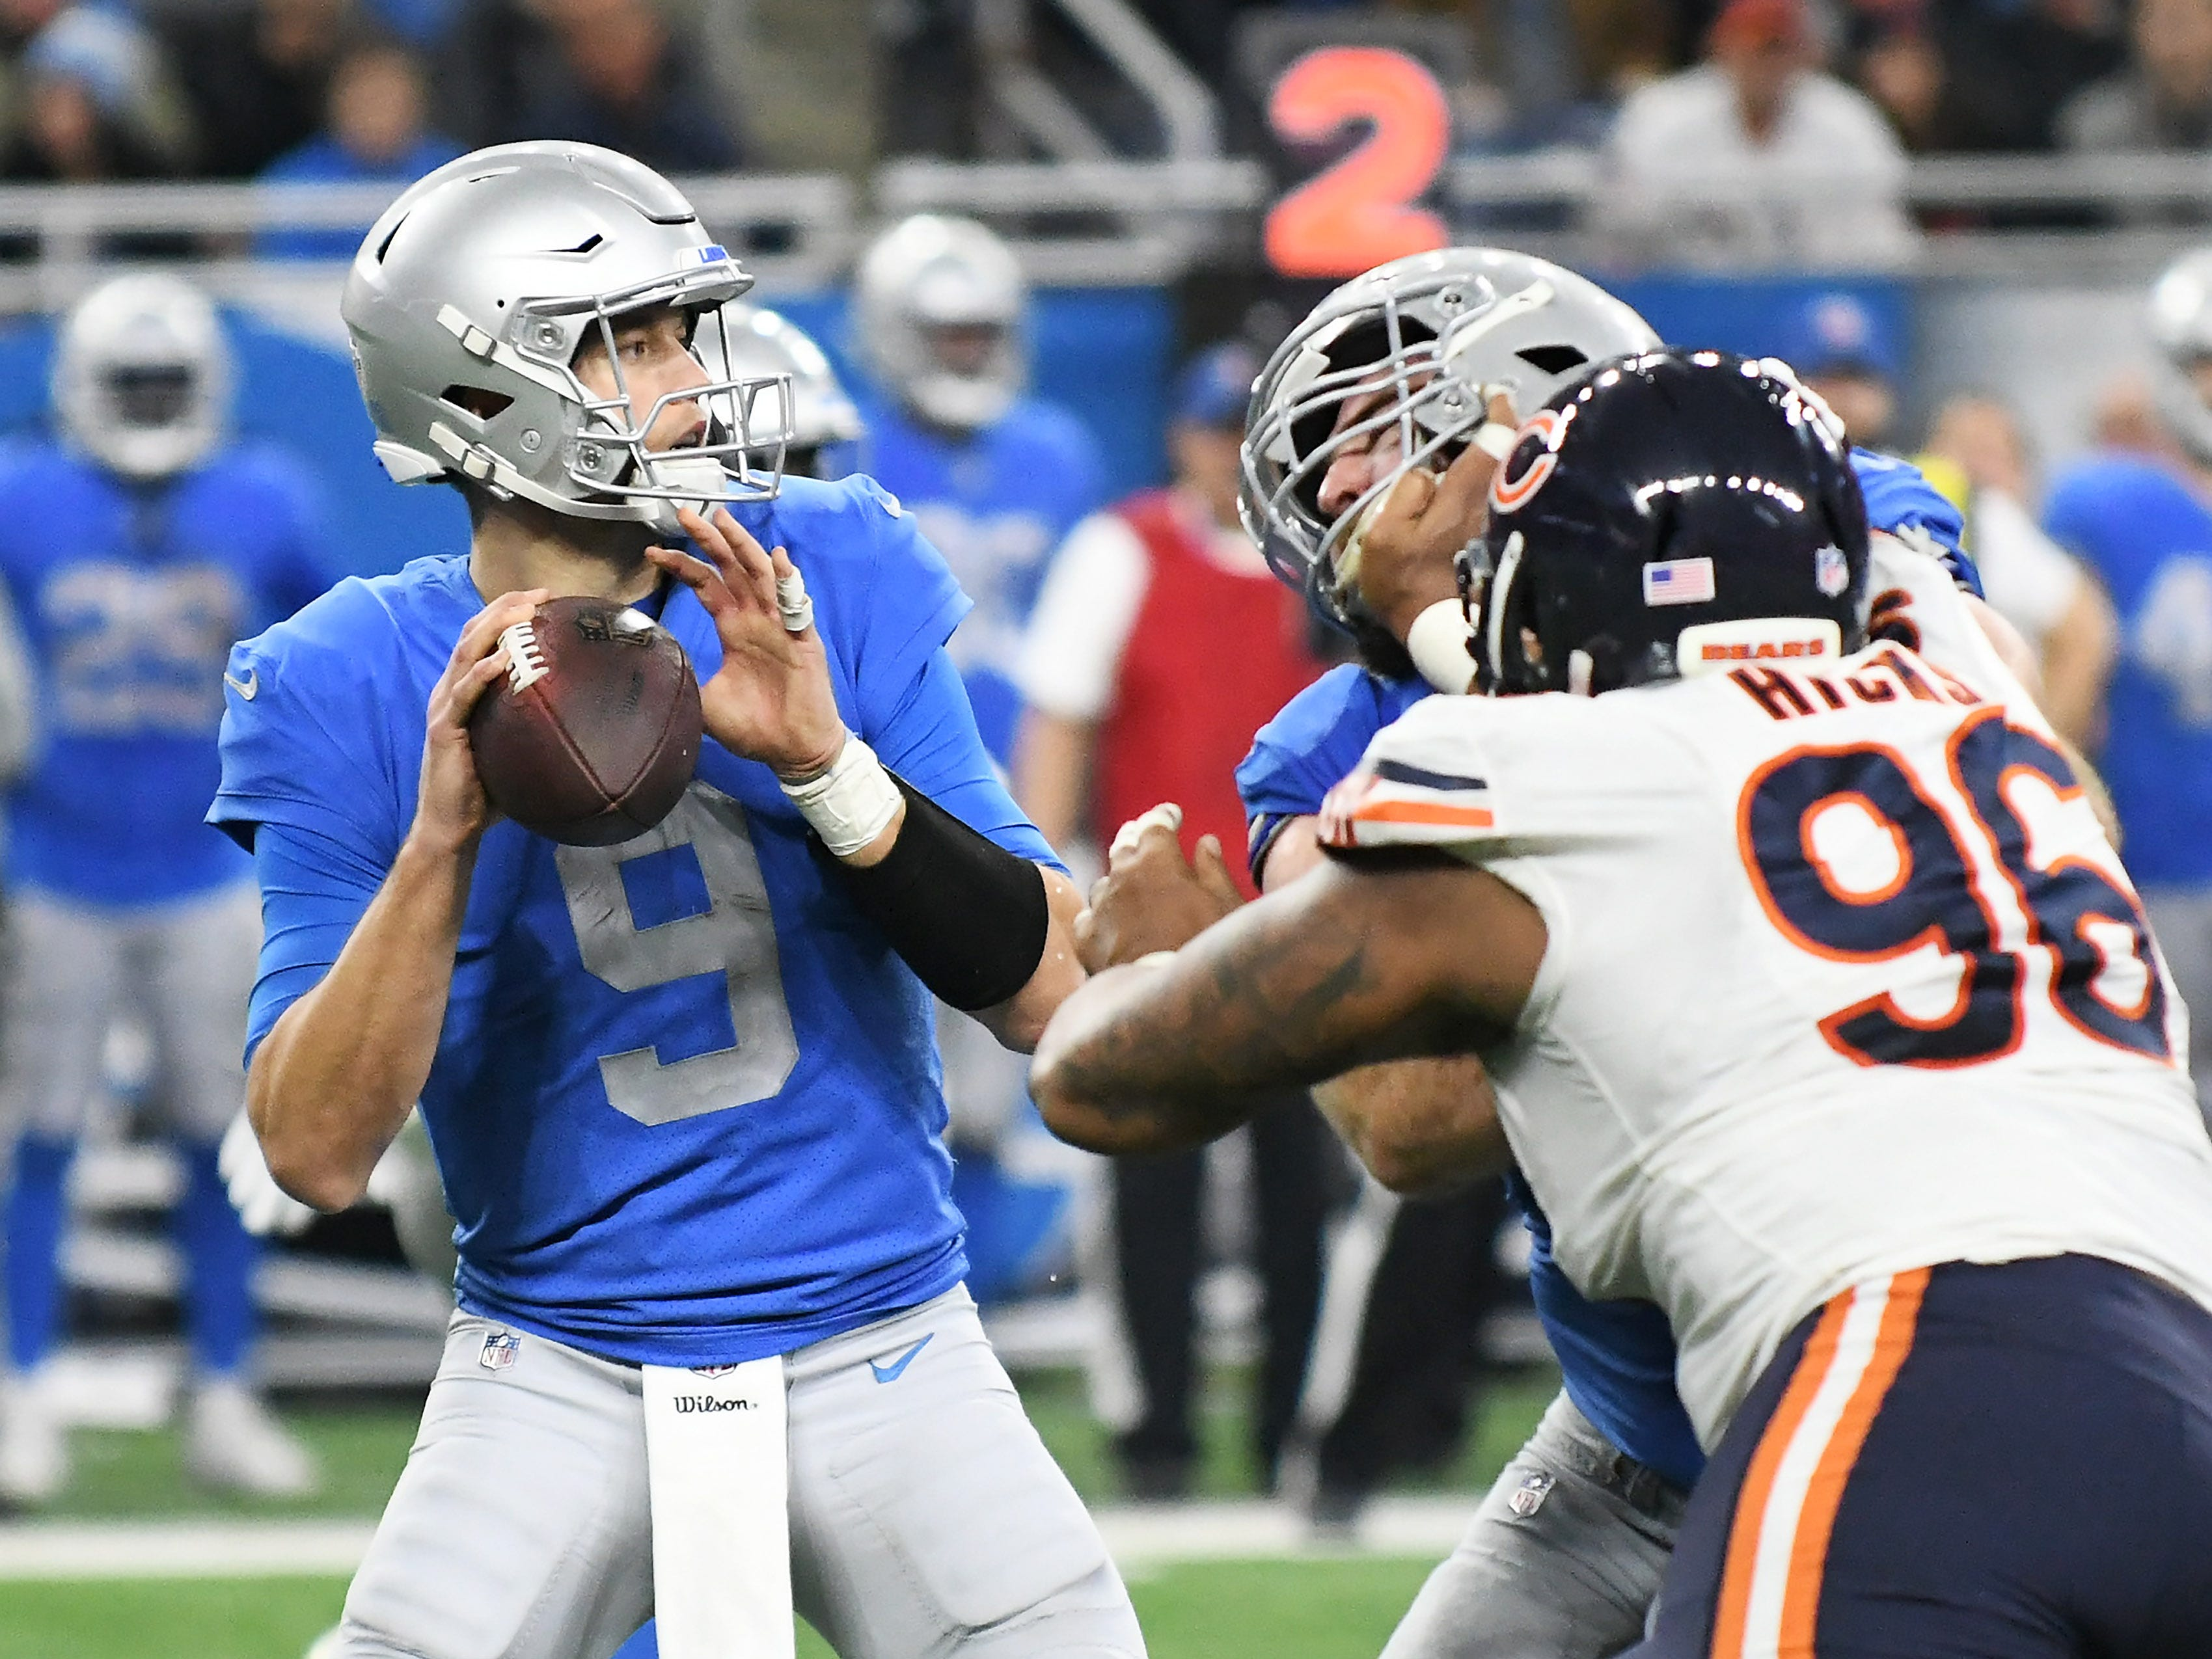 Lions quarterback Matthew Stafford looks to pass the ball In the fourth quarter.  Detroit Lions vs Chicago Bears on Thanksgiving Day at Ford Field in Detroit on Nov. 22, 2018.  Bears win, 23-16.